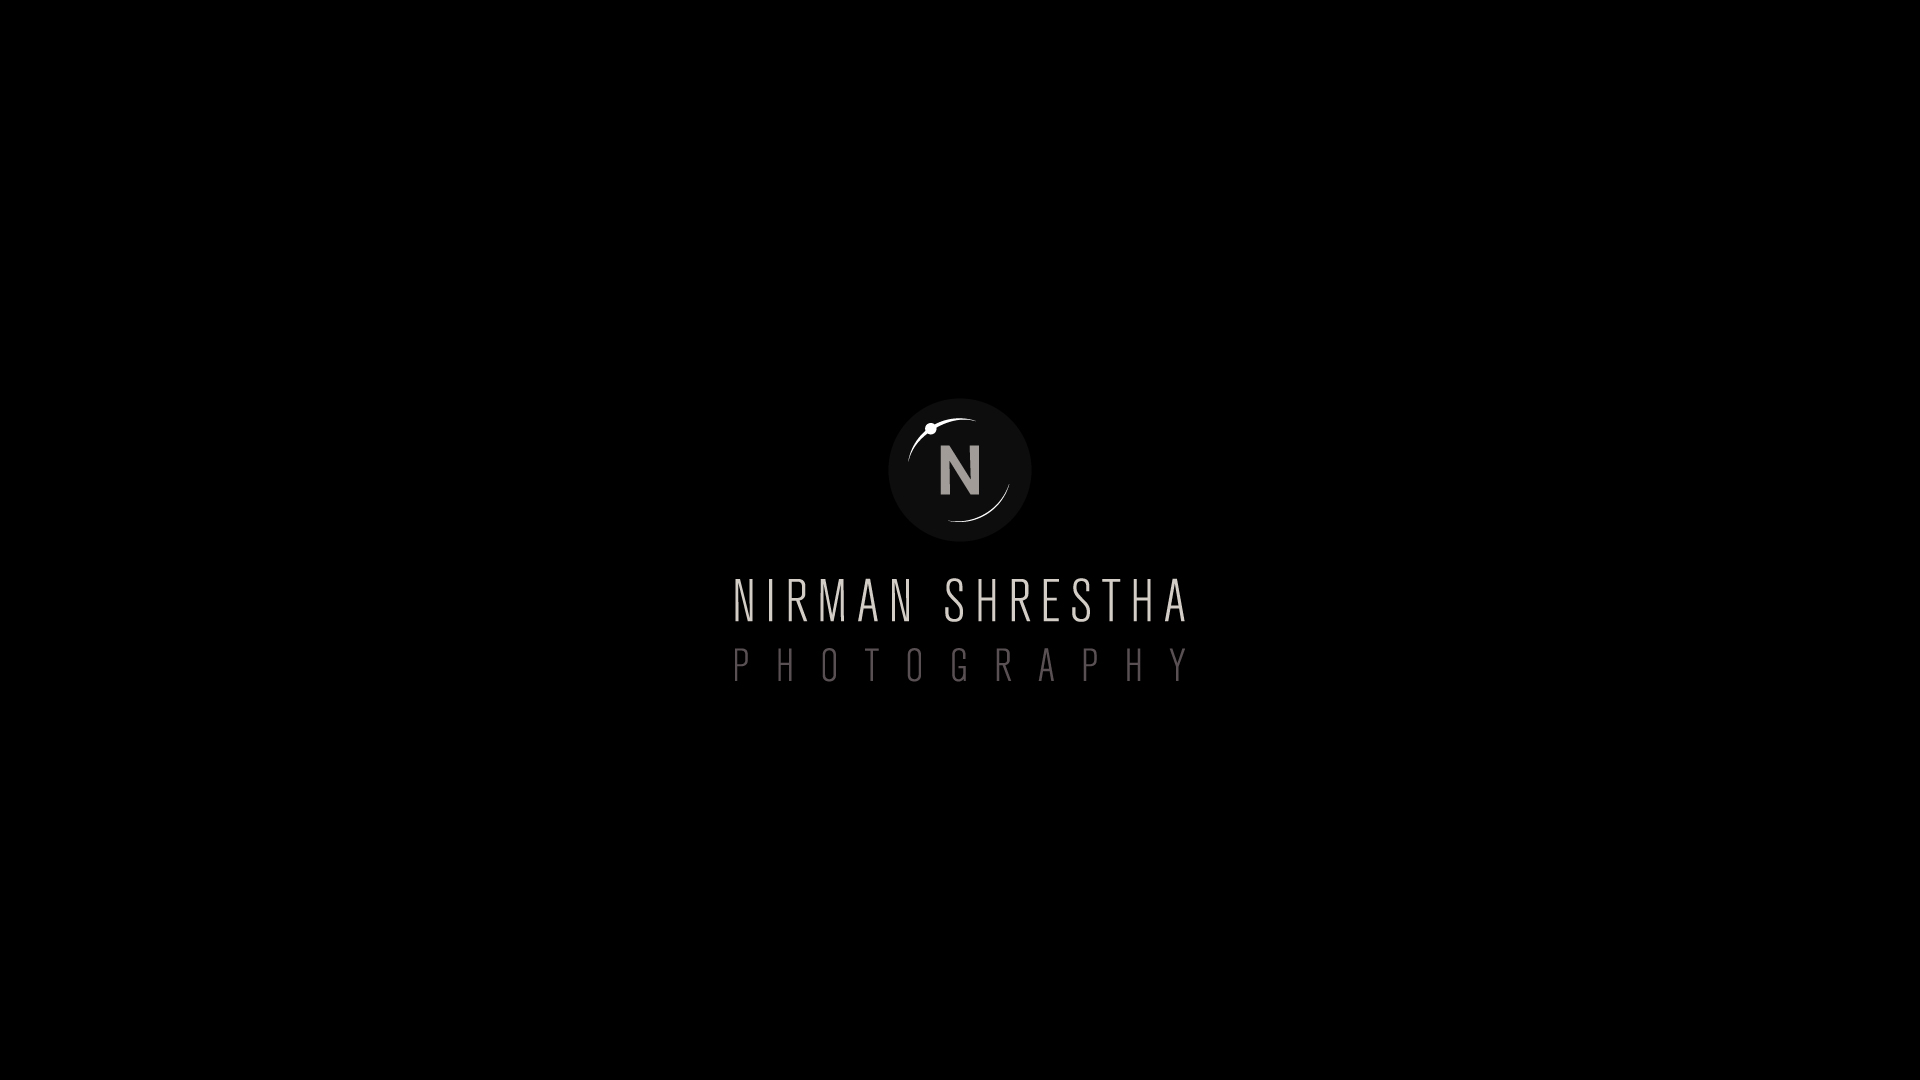 Nirman Shrestha Photography